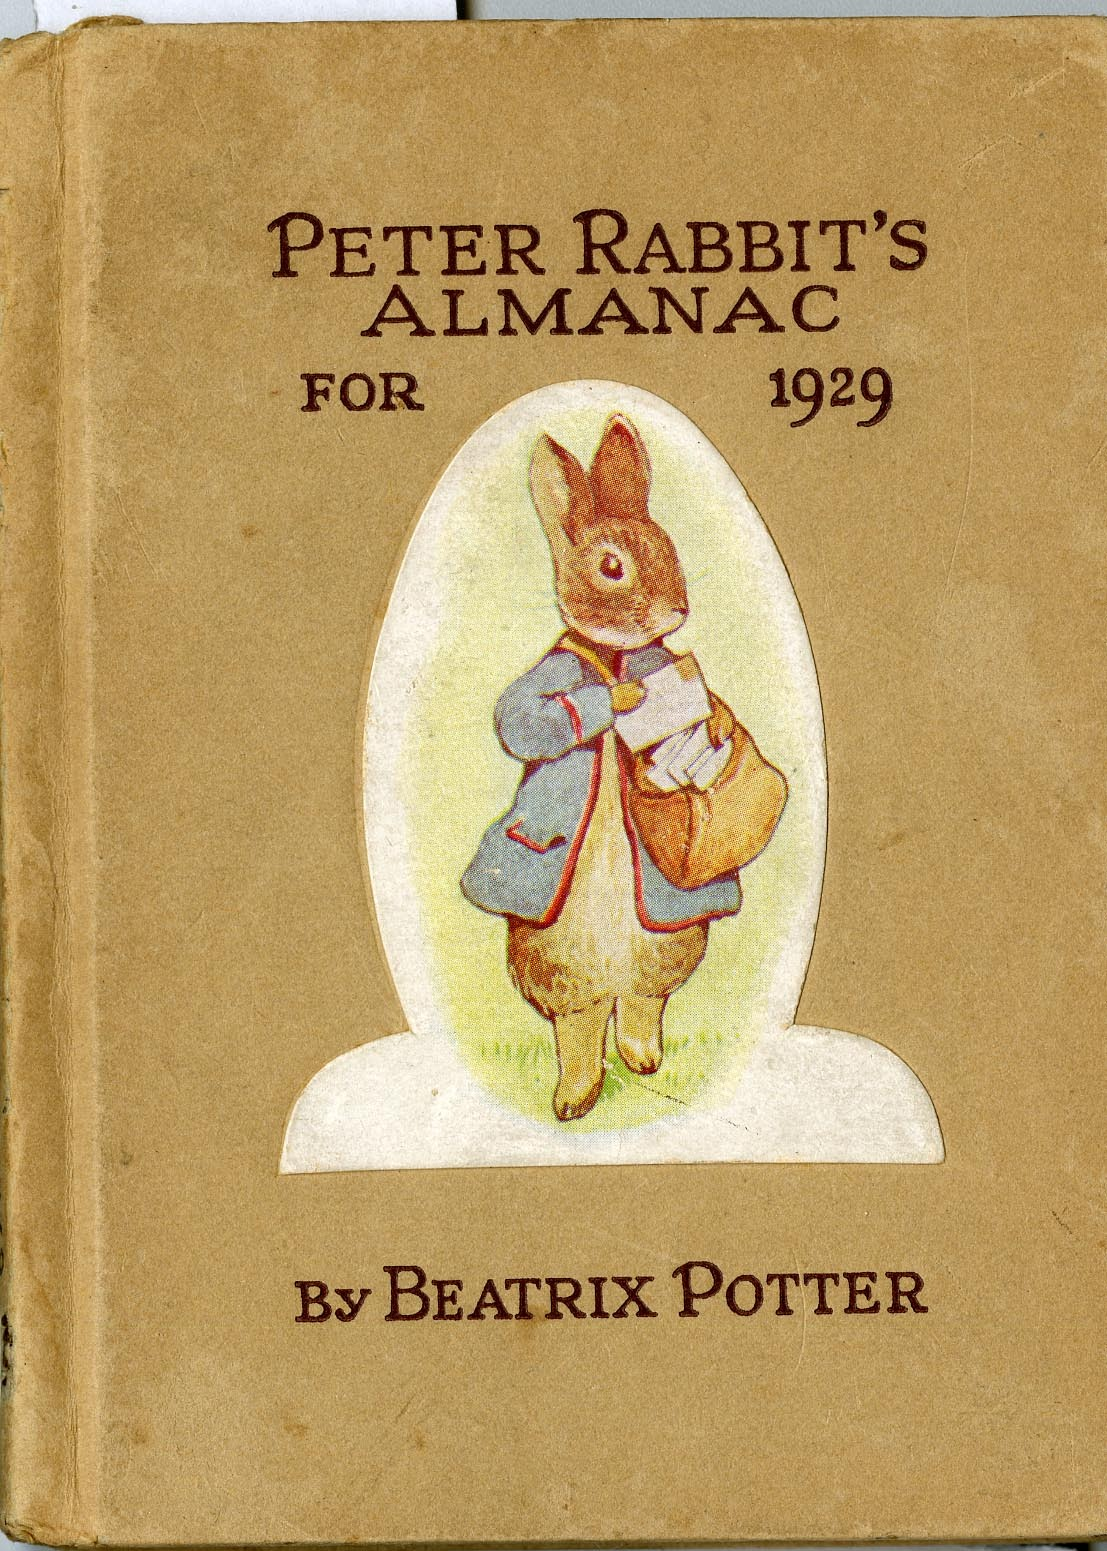 Peter Rabbit's Almanac for 1929